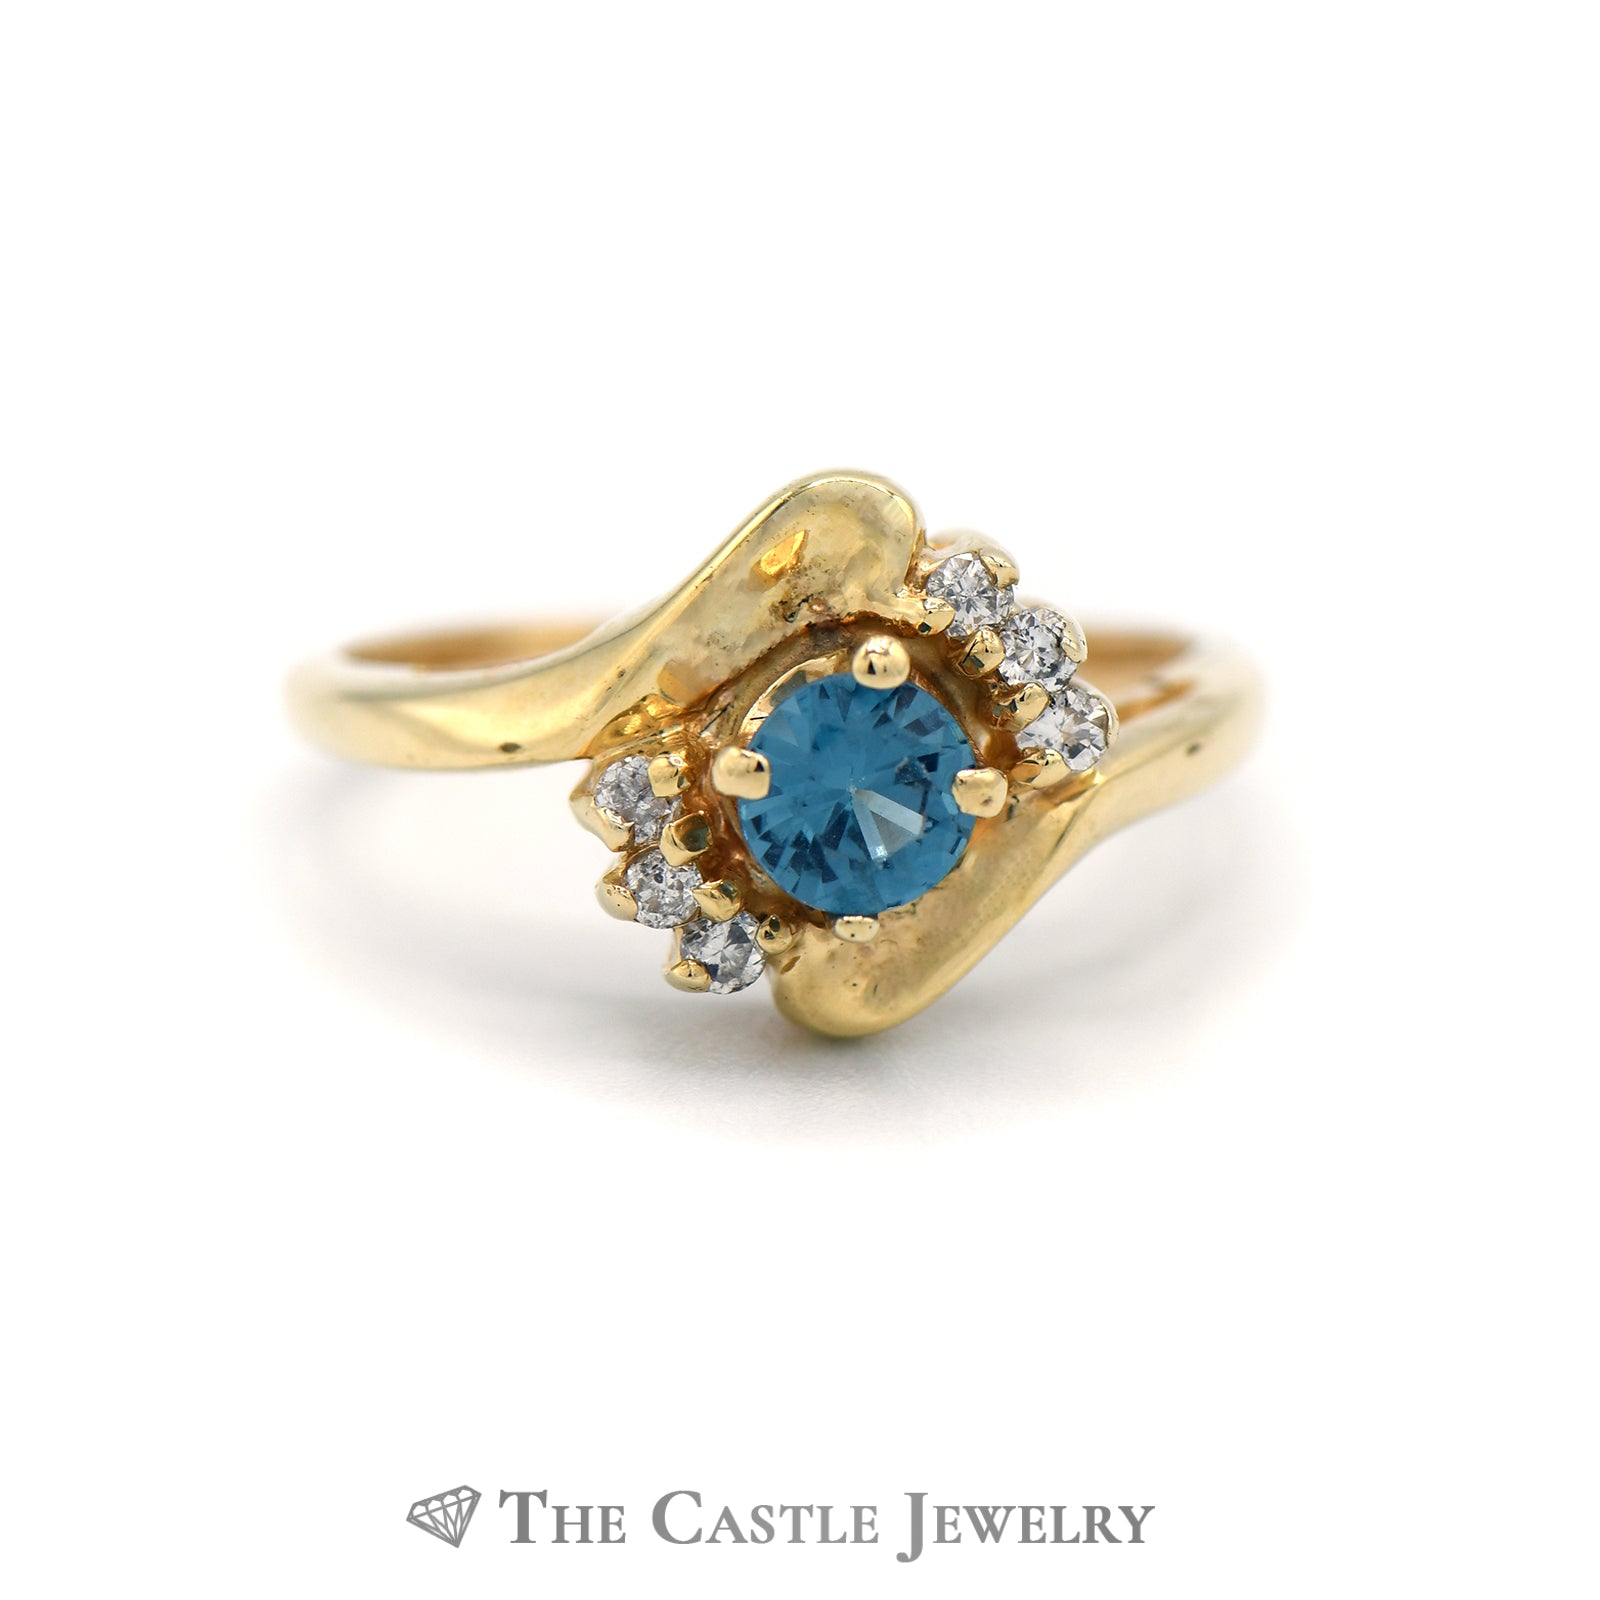 Lovely London Topaz Ring with Diamond Accents in 14K Yellow Gold